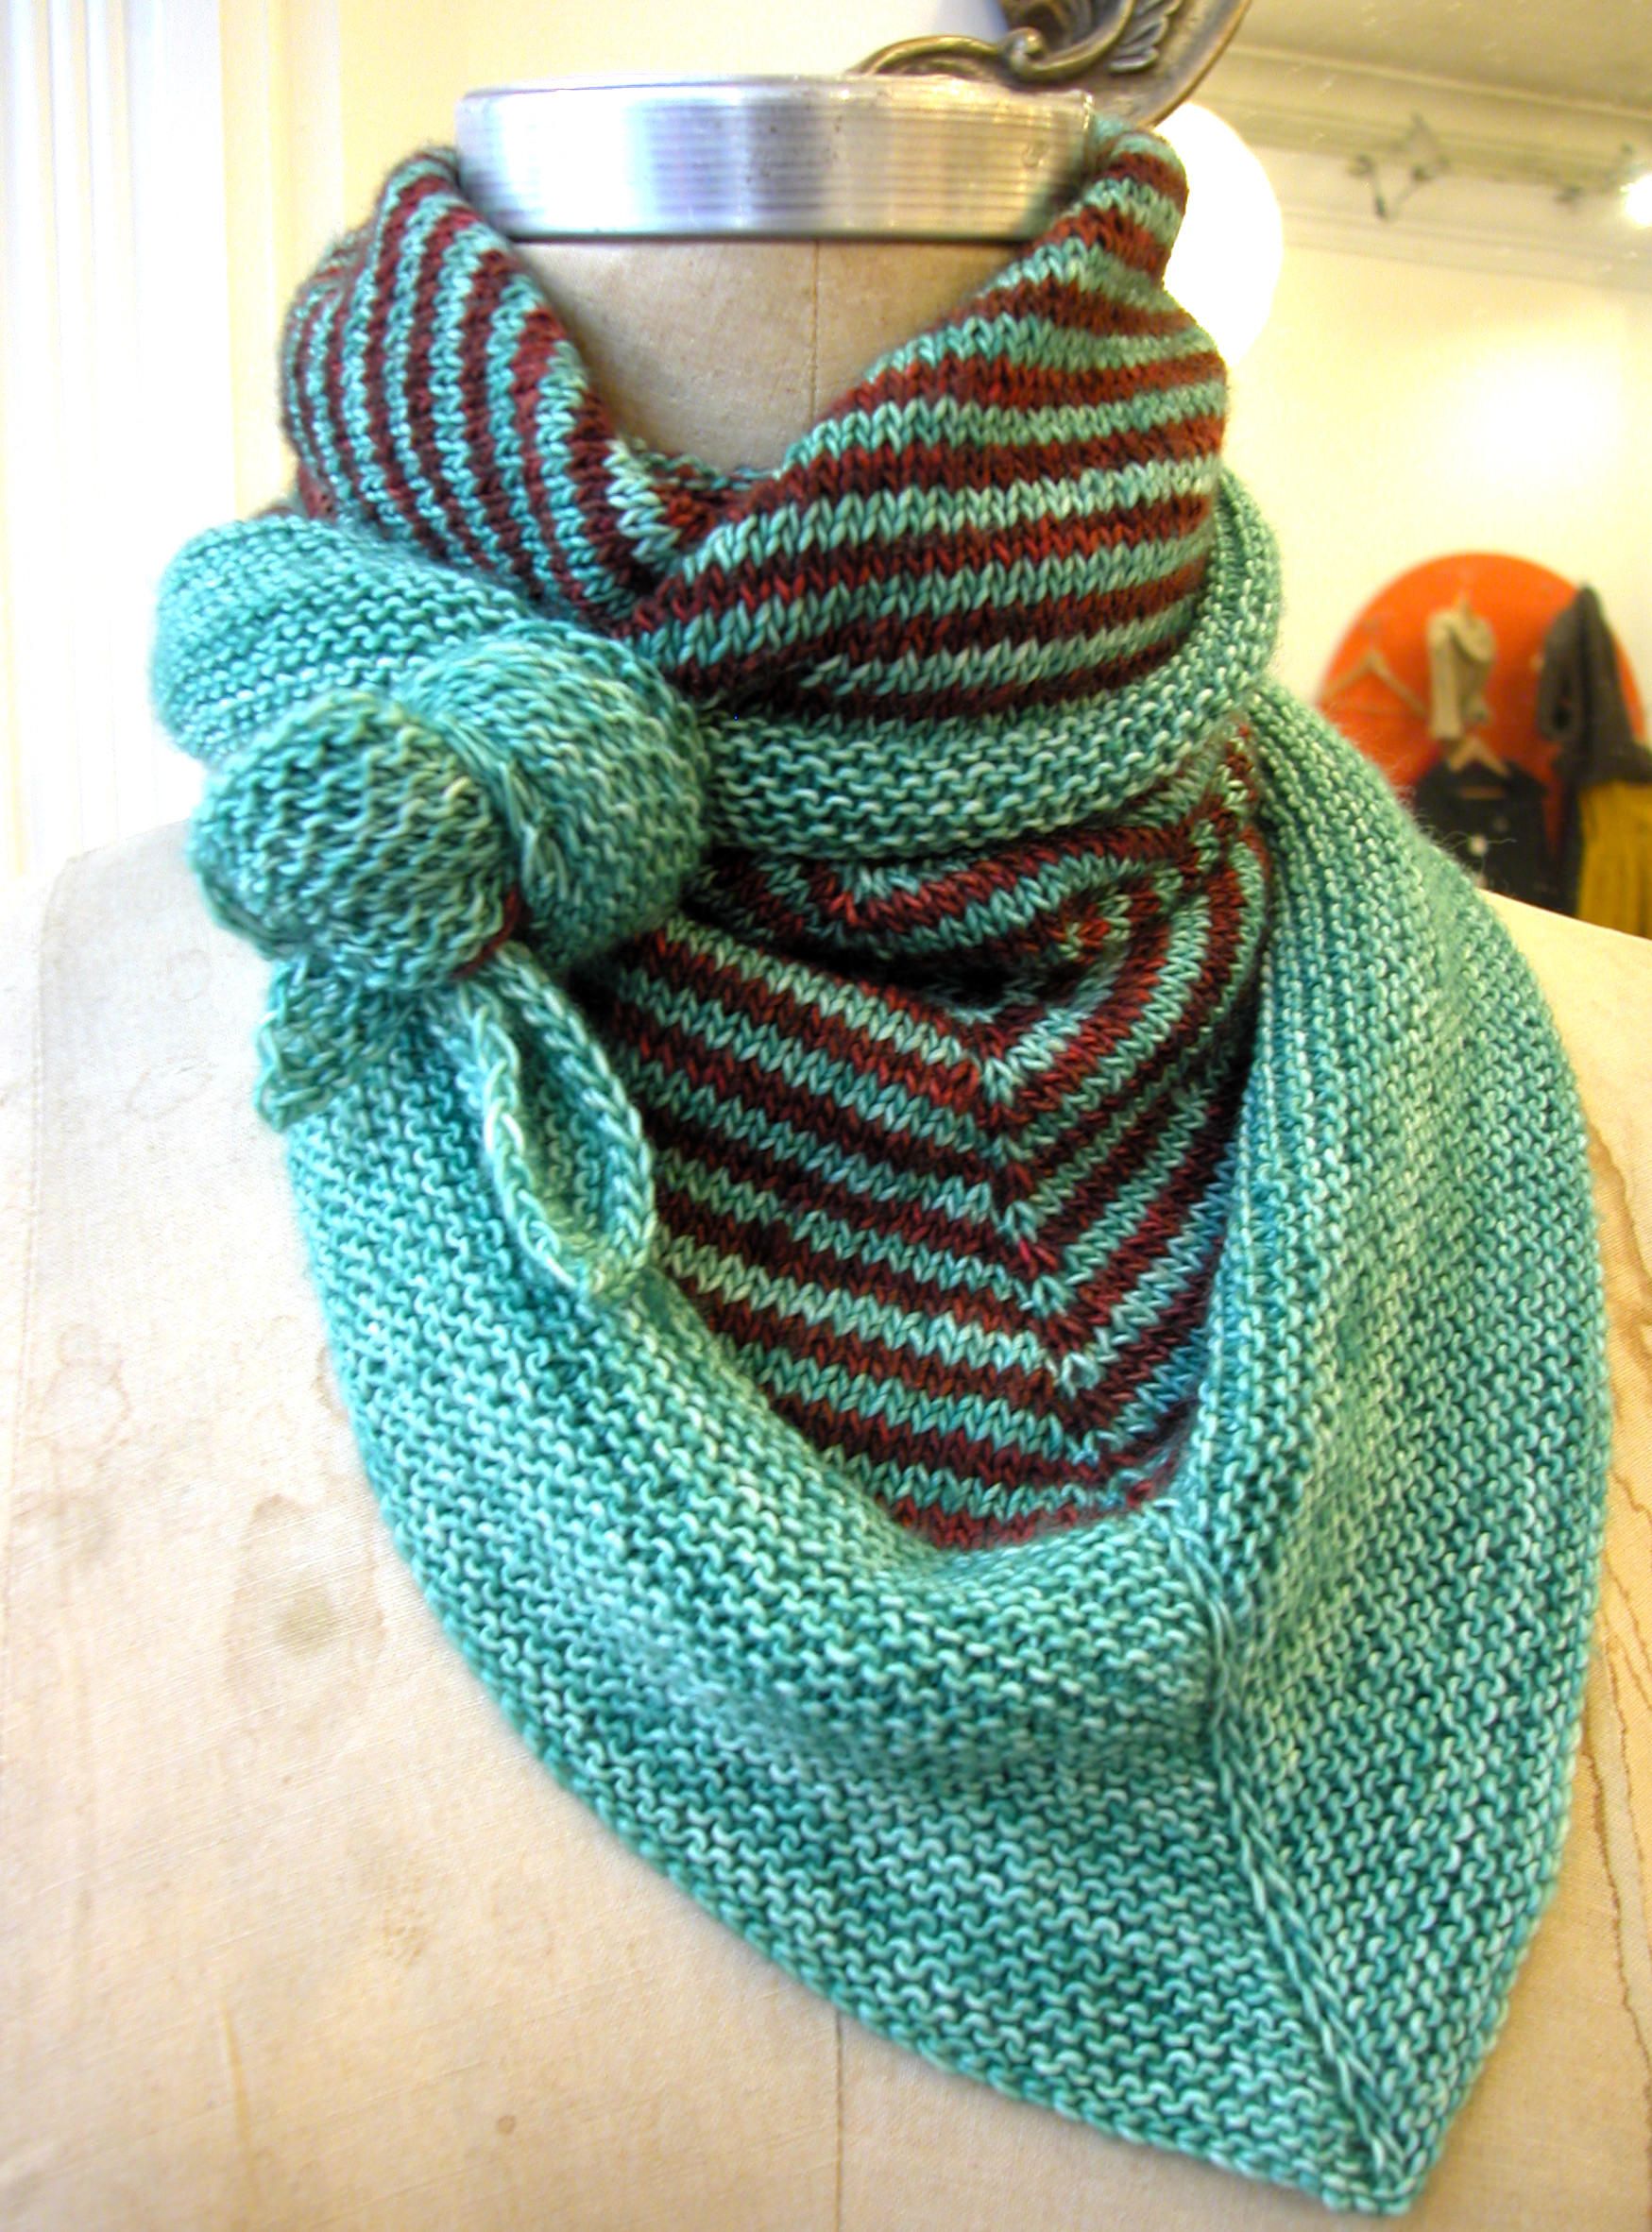 Knitting Patterns For Triangle Scarves : triangular scarf the knit cafe